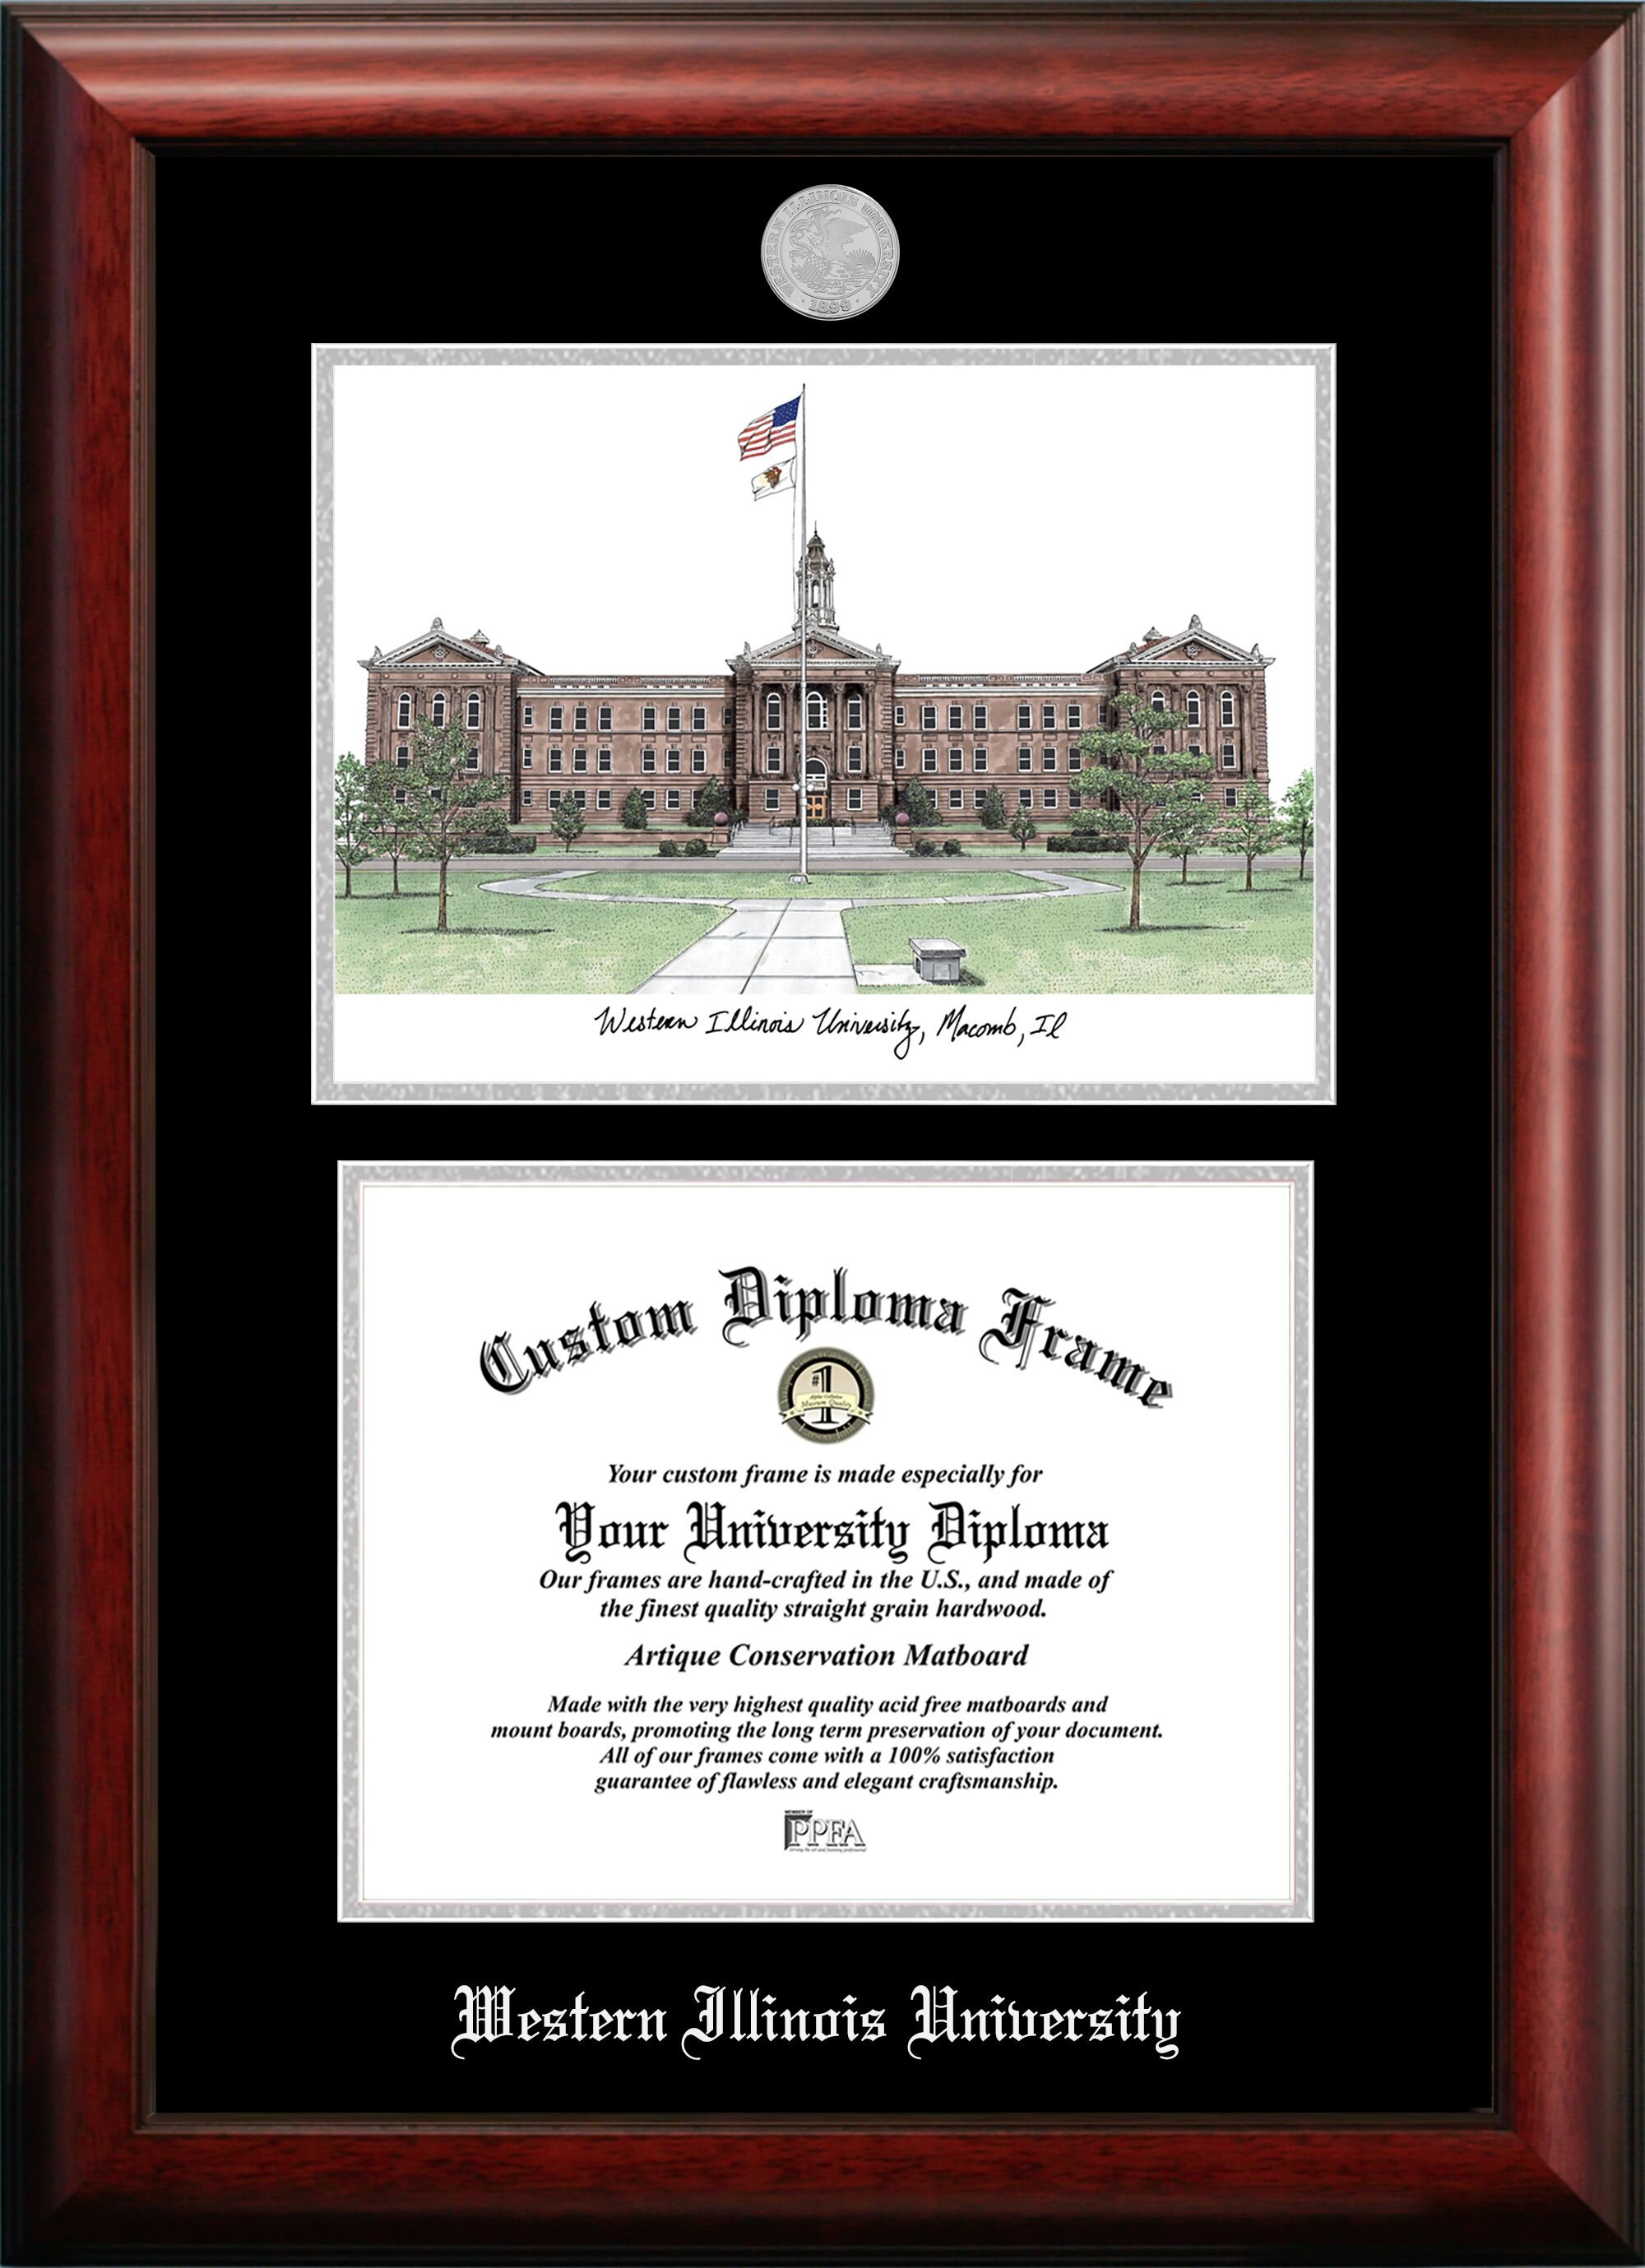 Black Southern Illinois University 4x6 Brushed Metal Picture Frame